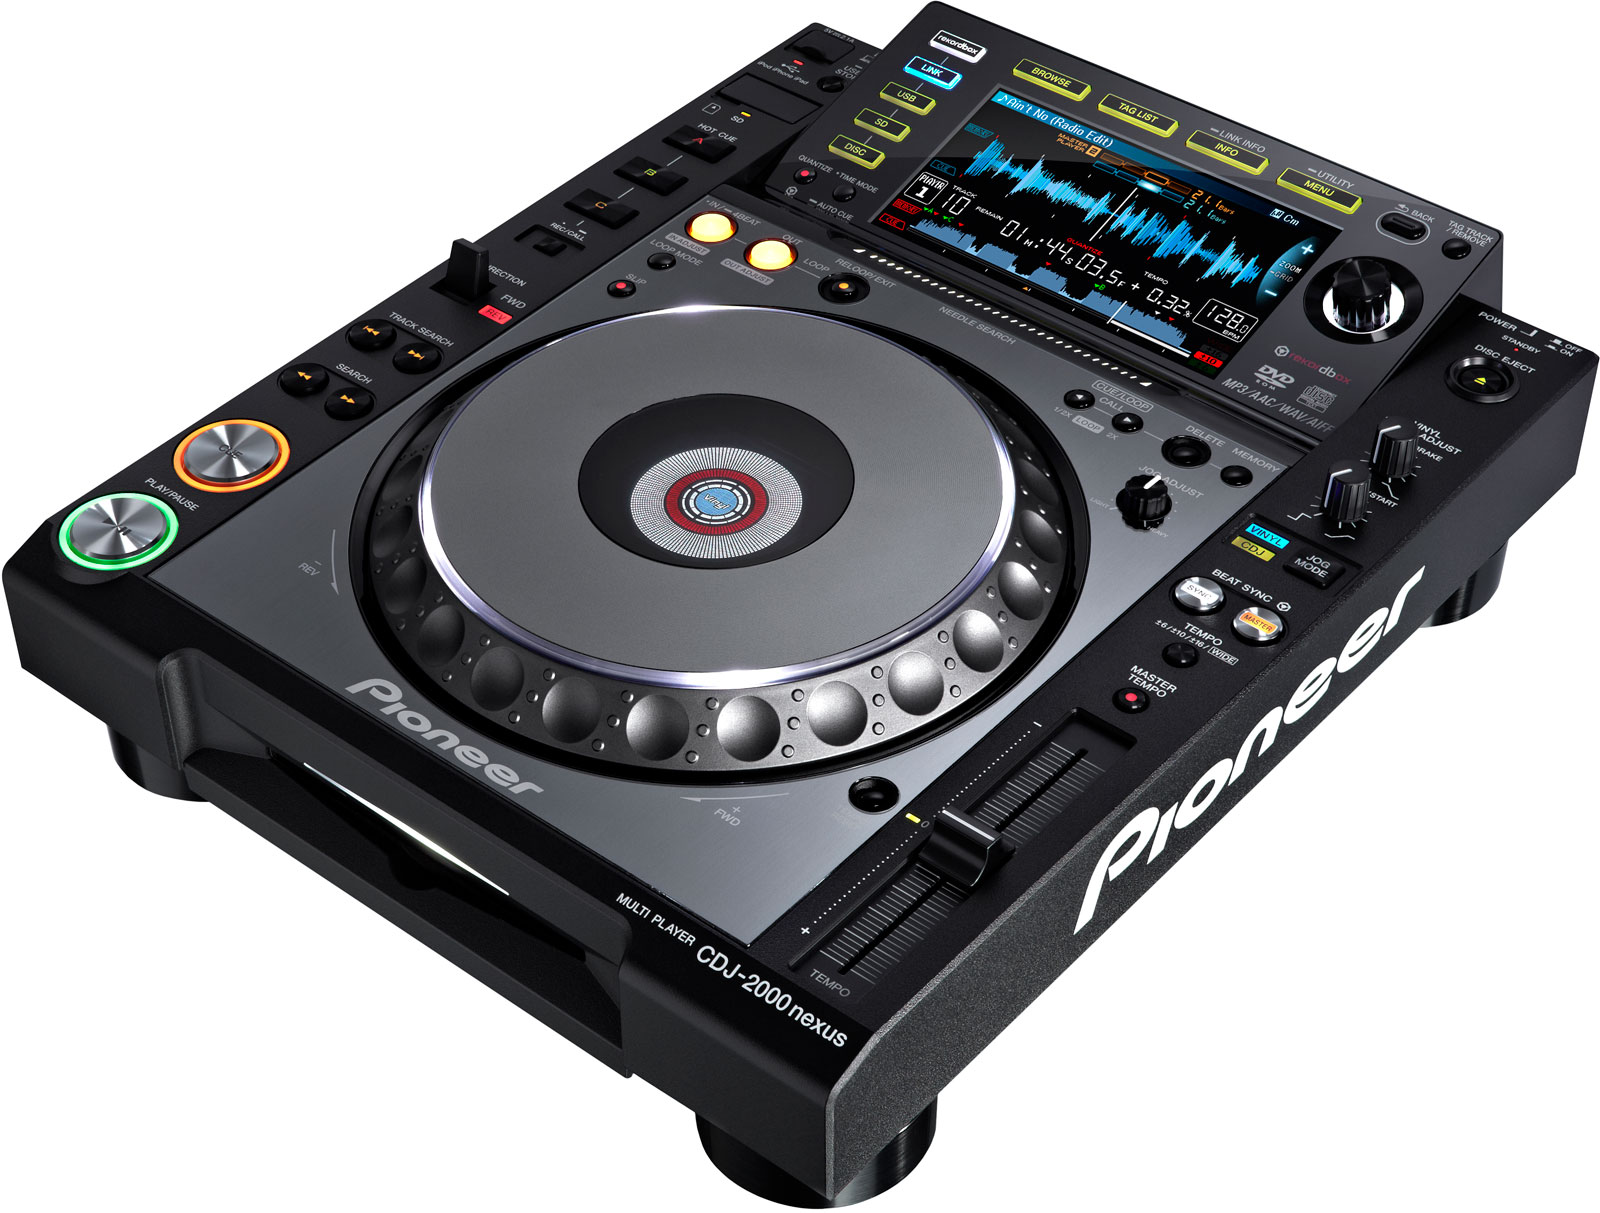 Download firmware or software for CDJ